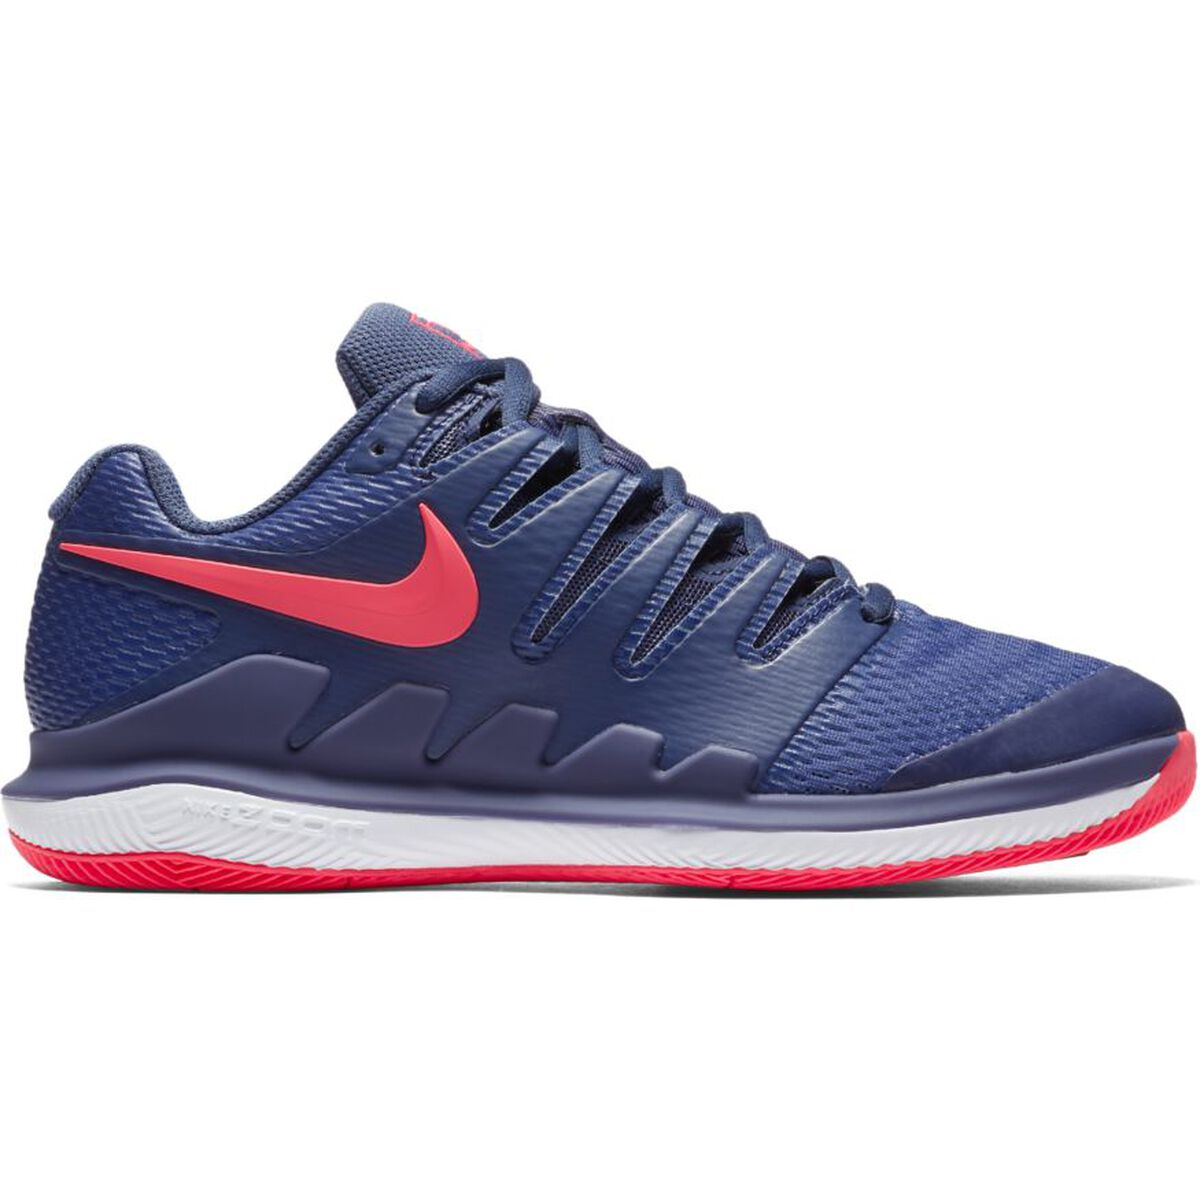 finest selection 010fc ac71c Images. Nike Air Zoom Vapor X Women  39 s Tennis Shoe - Dark Blue